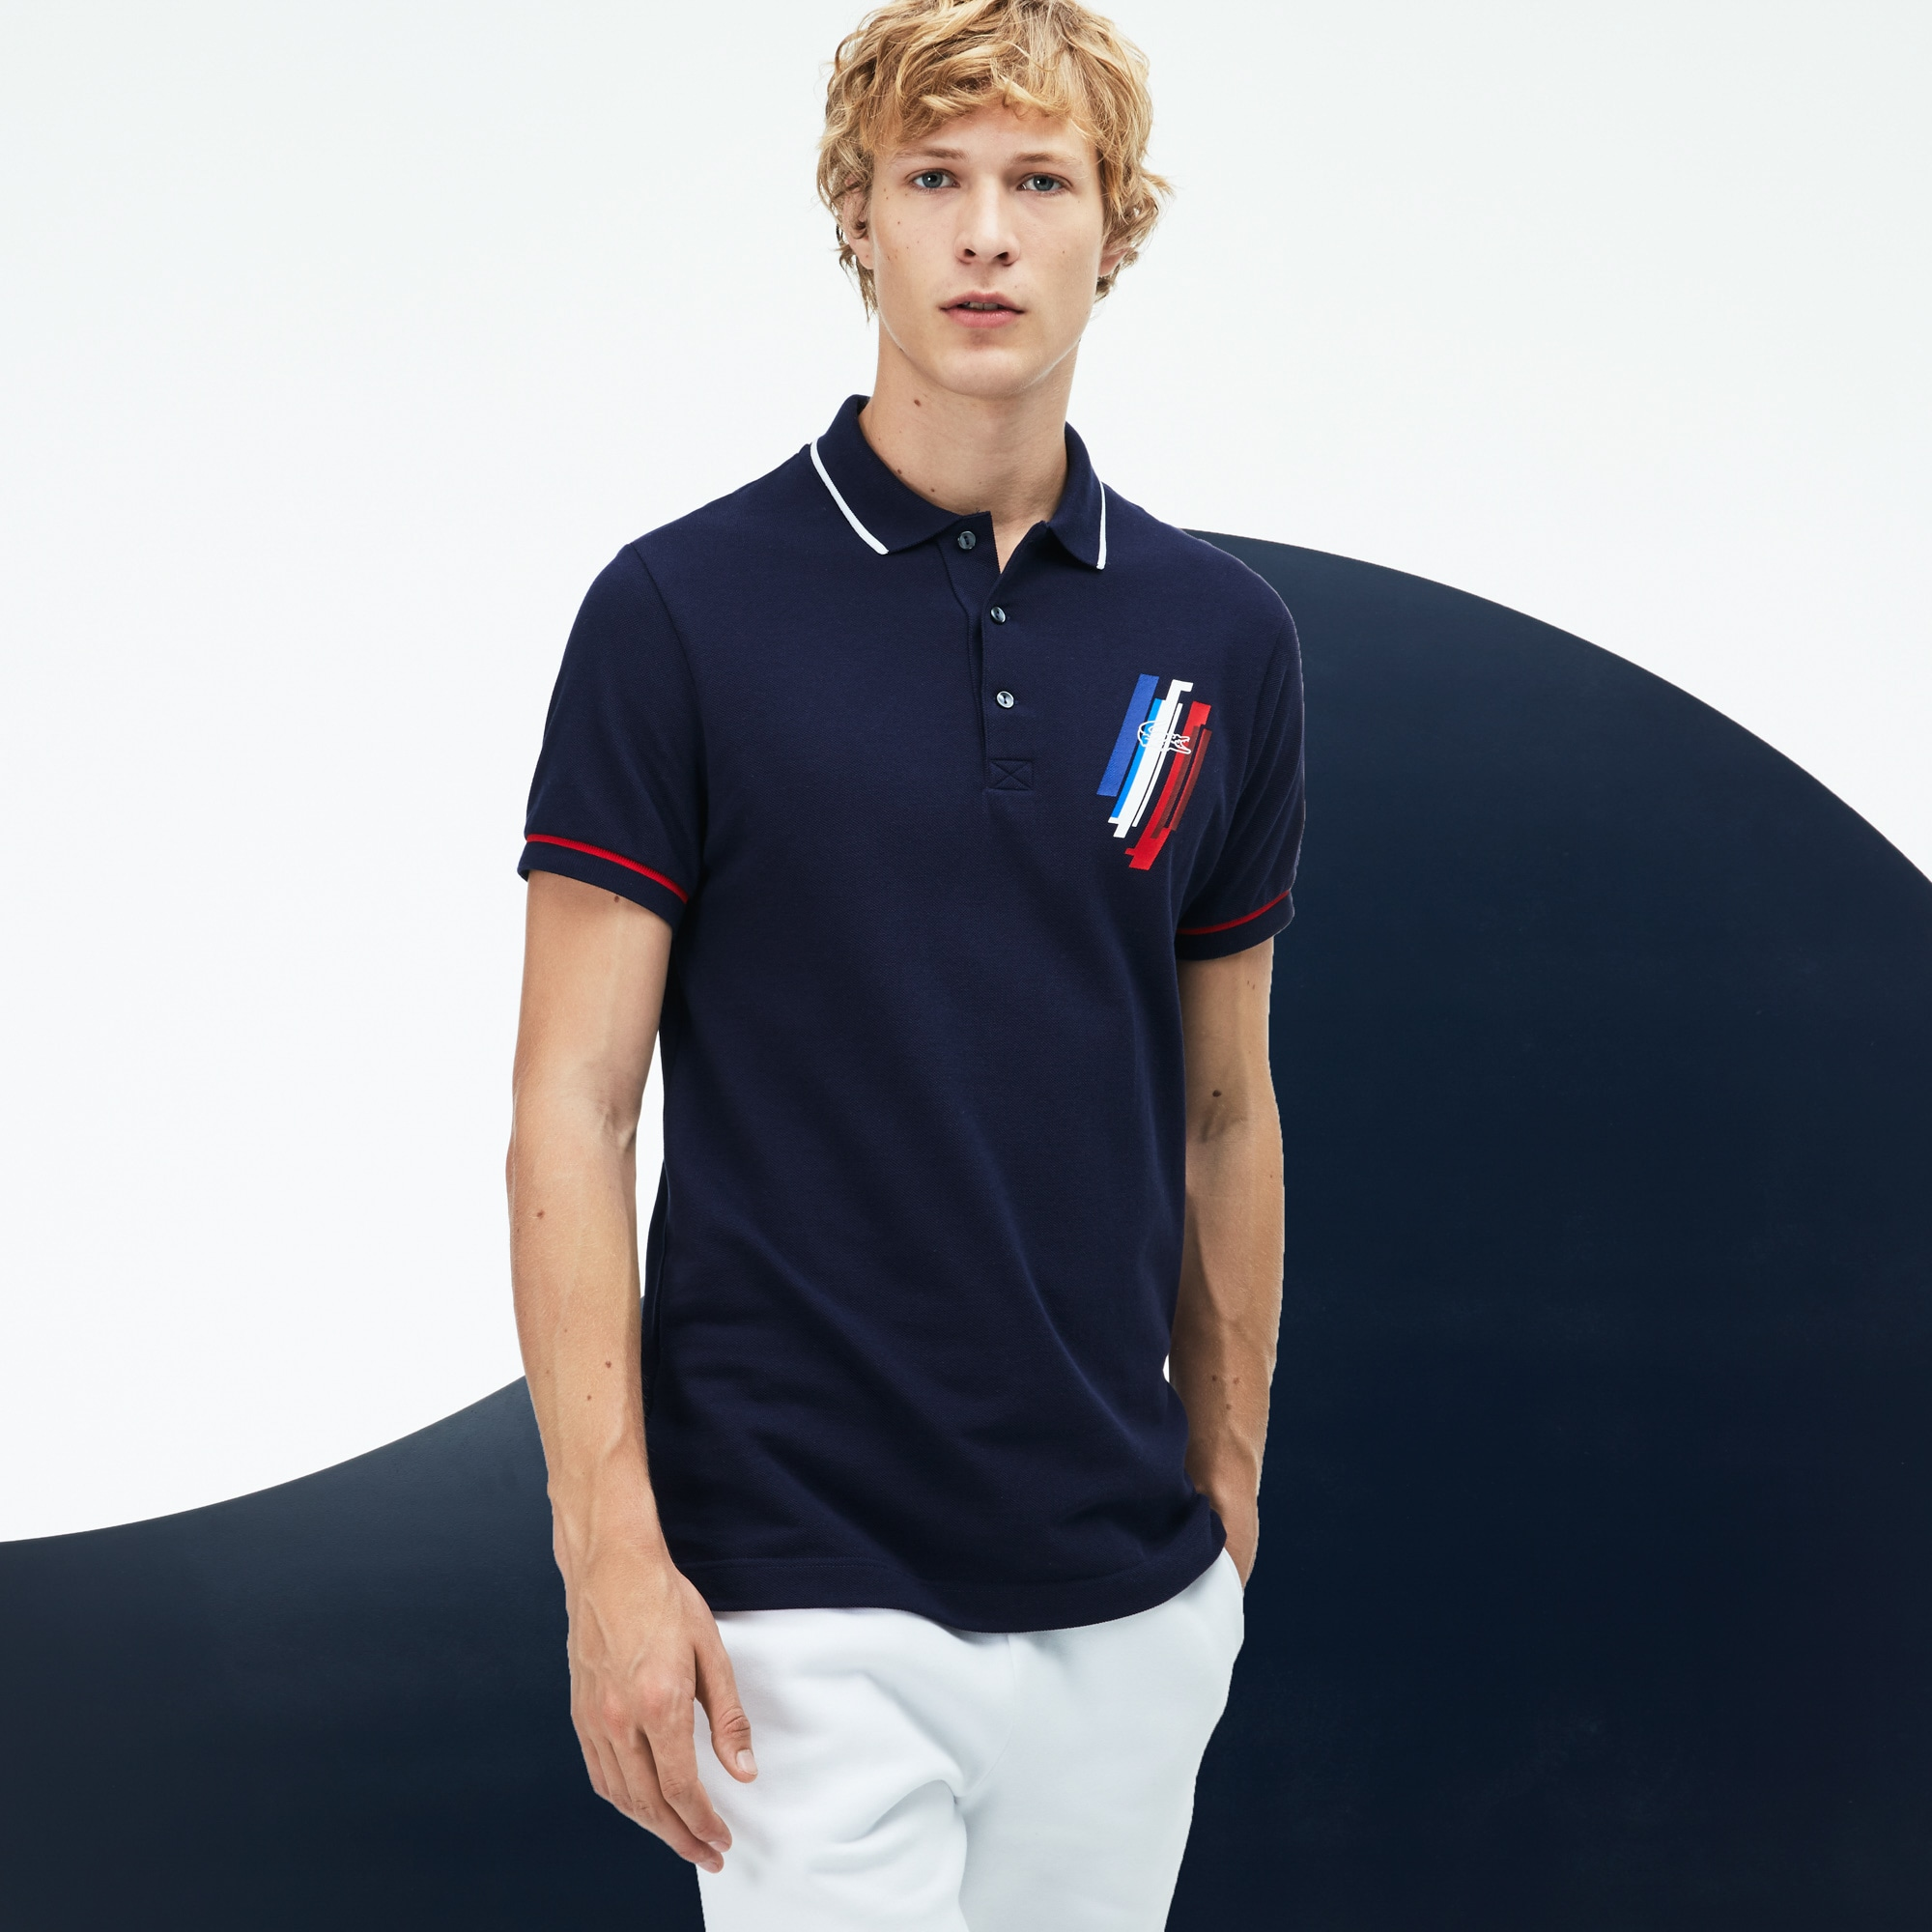 Men's Tricolor Collection Design Two-Ply Petit Piqué Polo